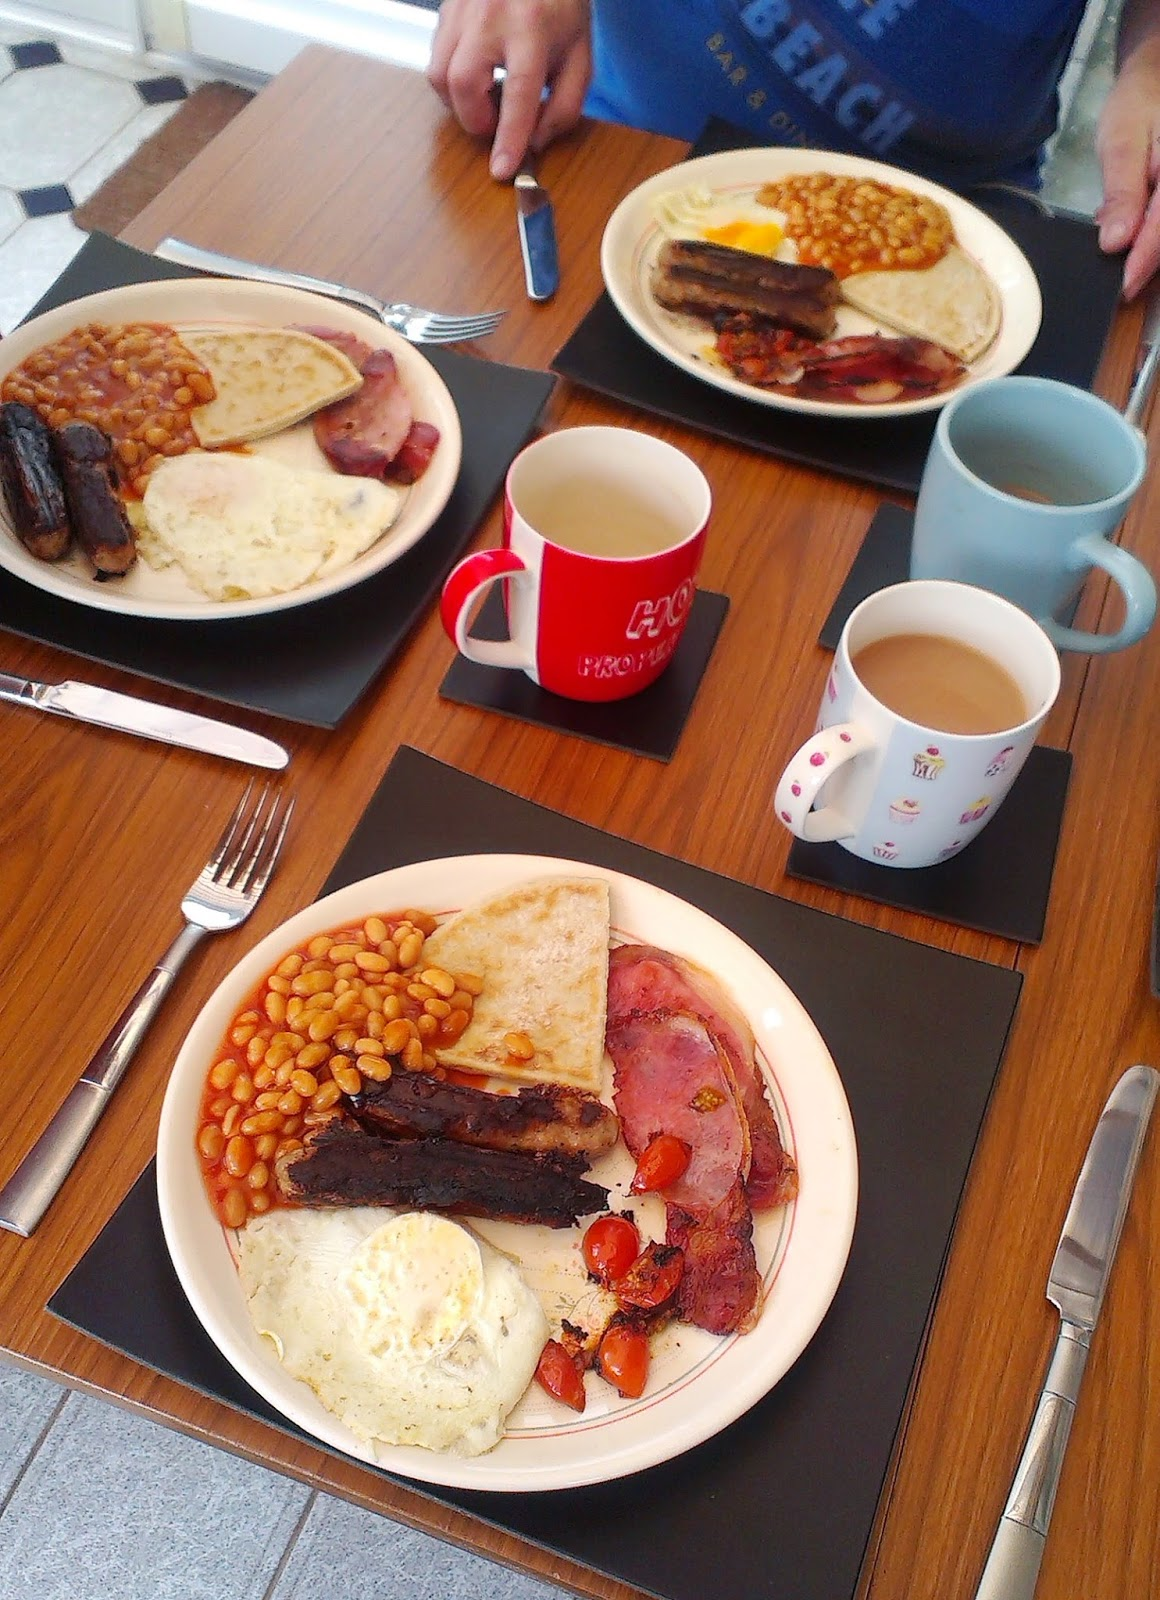 11am - Breakfast fry up